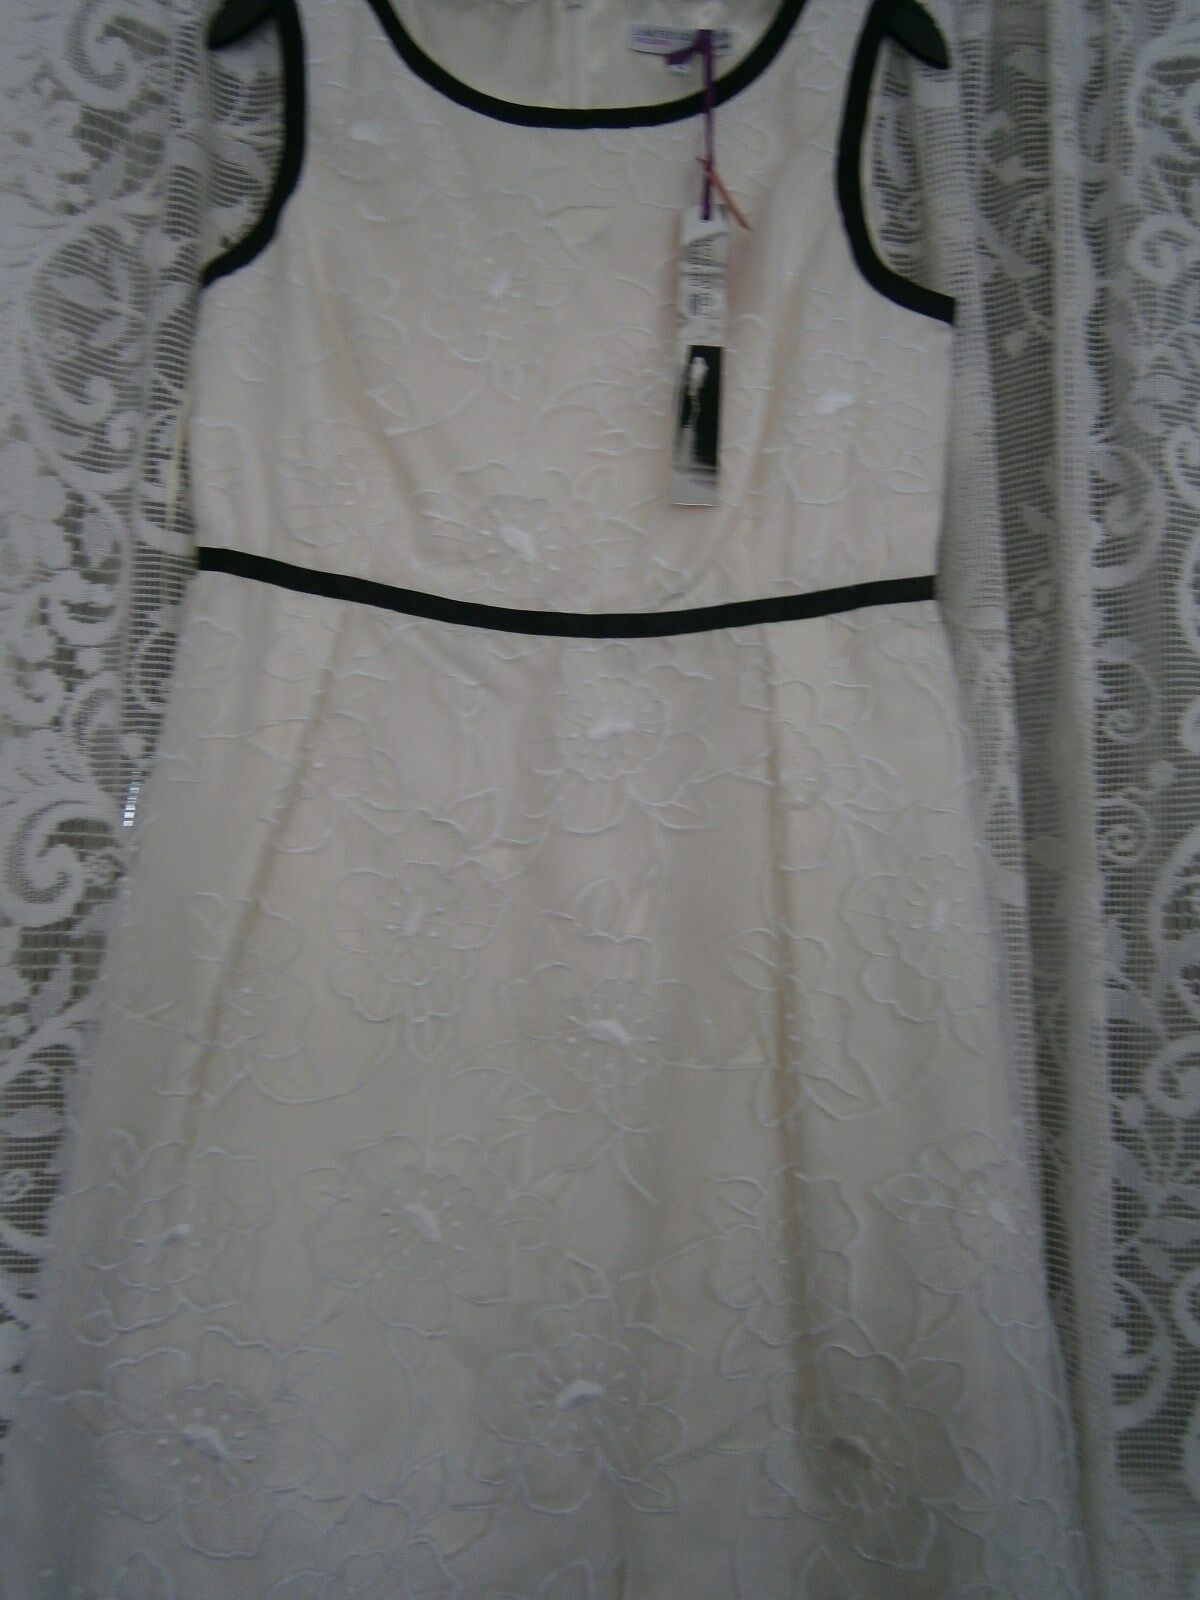 M&S DRESS LTD COLLECTION EXCLUSIVE, OCCASION, CREAM LACE, SIZE 12, BNWT